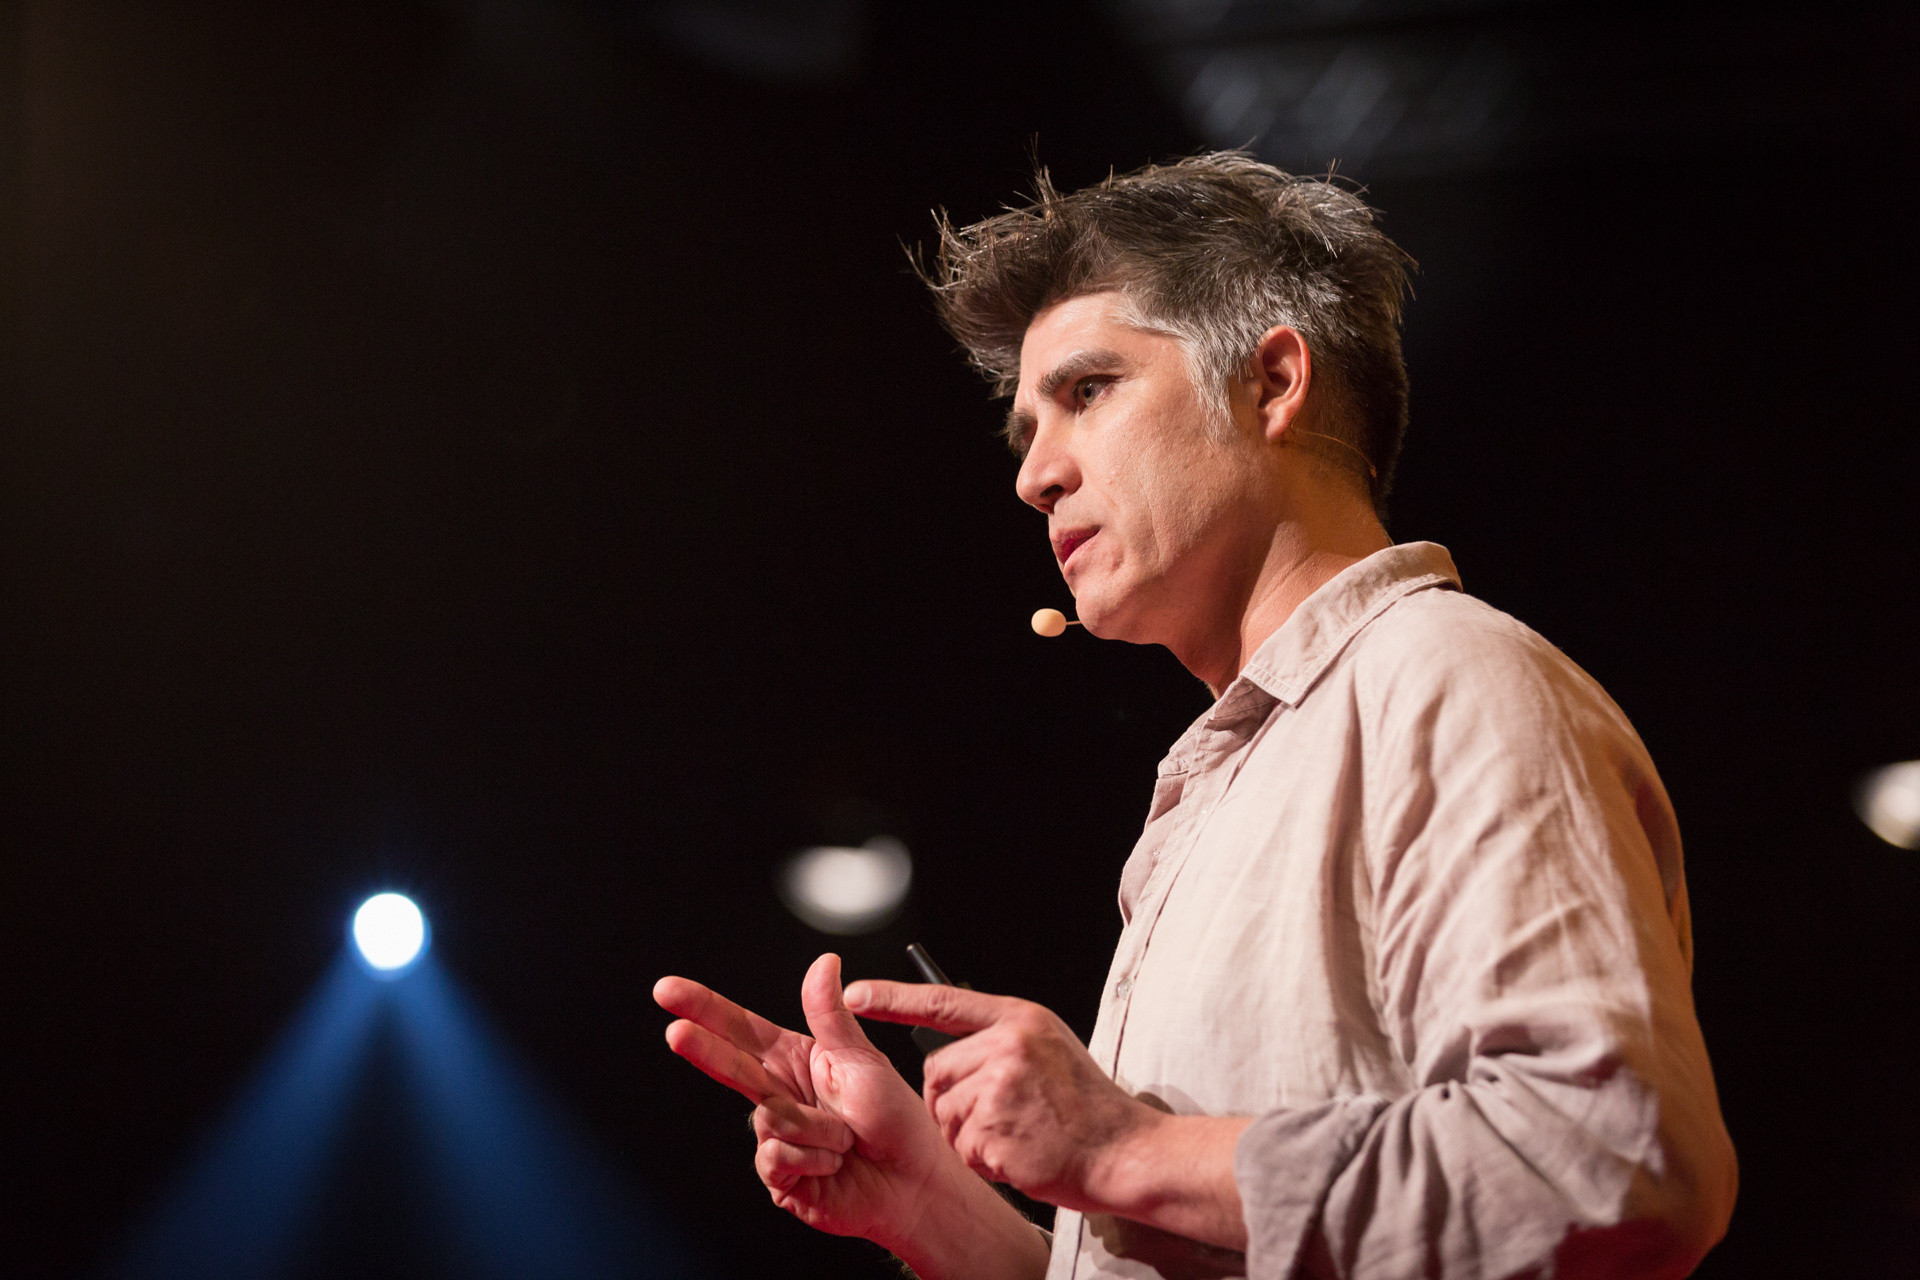 TED Talk: My Architectural Philosophy? Bring the Community Into the Process / Alejandro Aravena